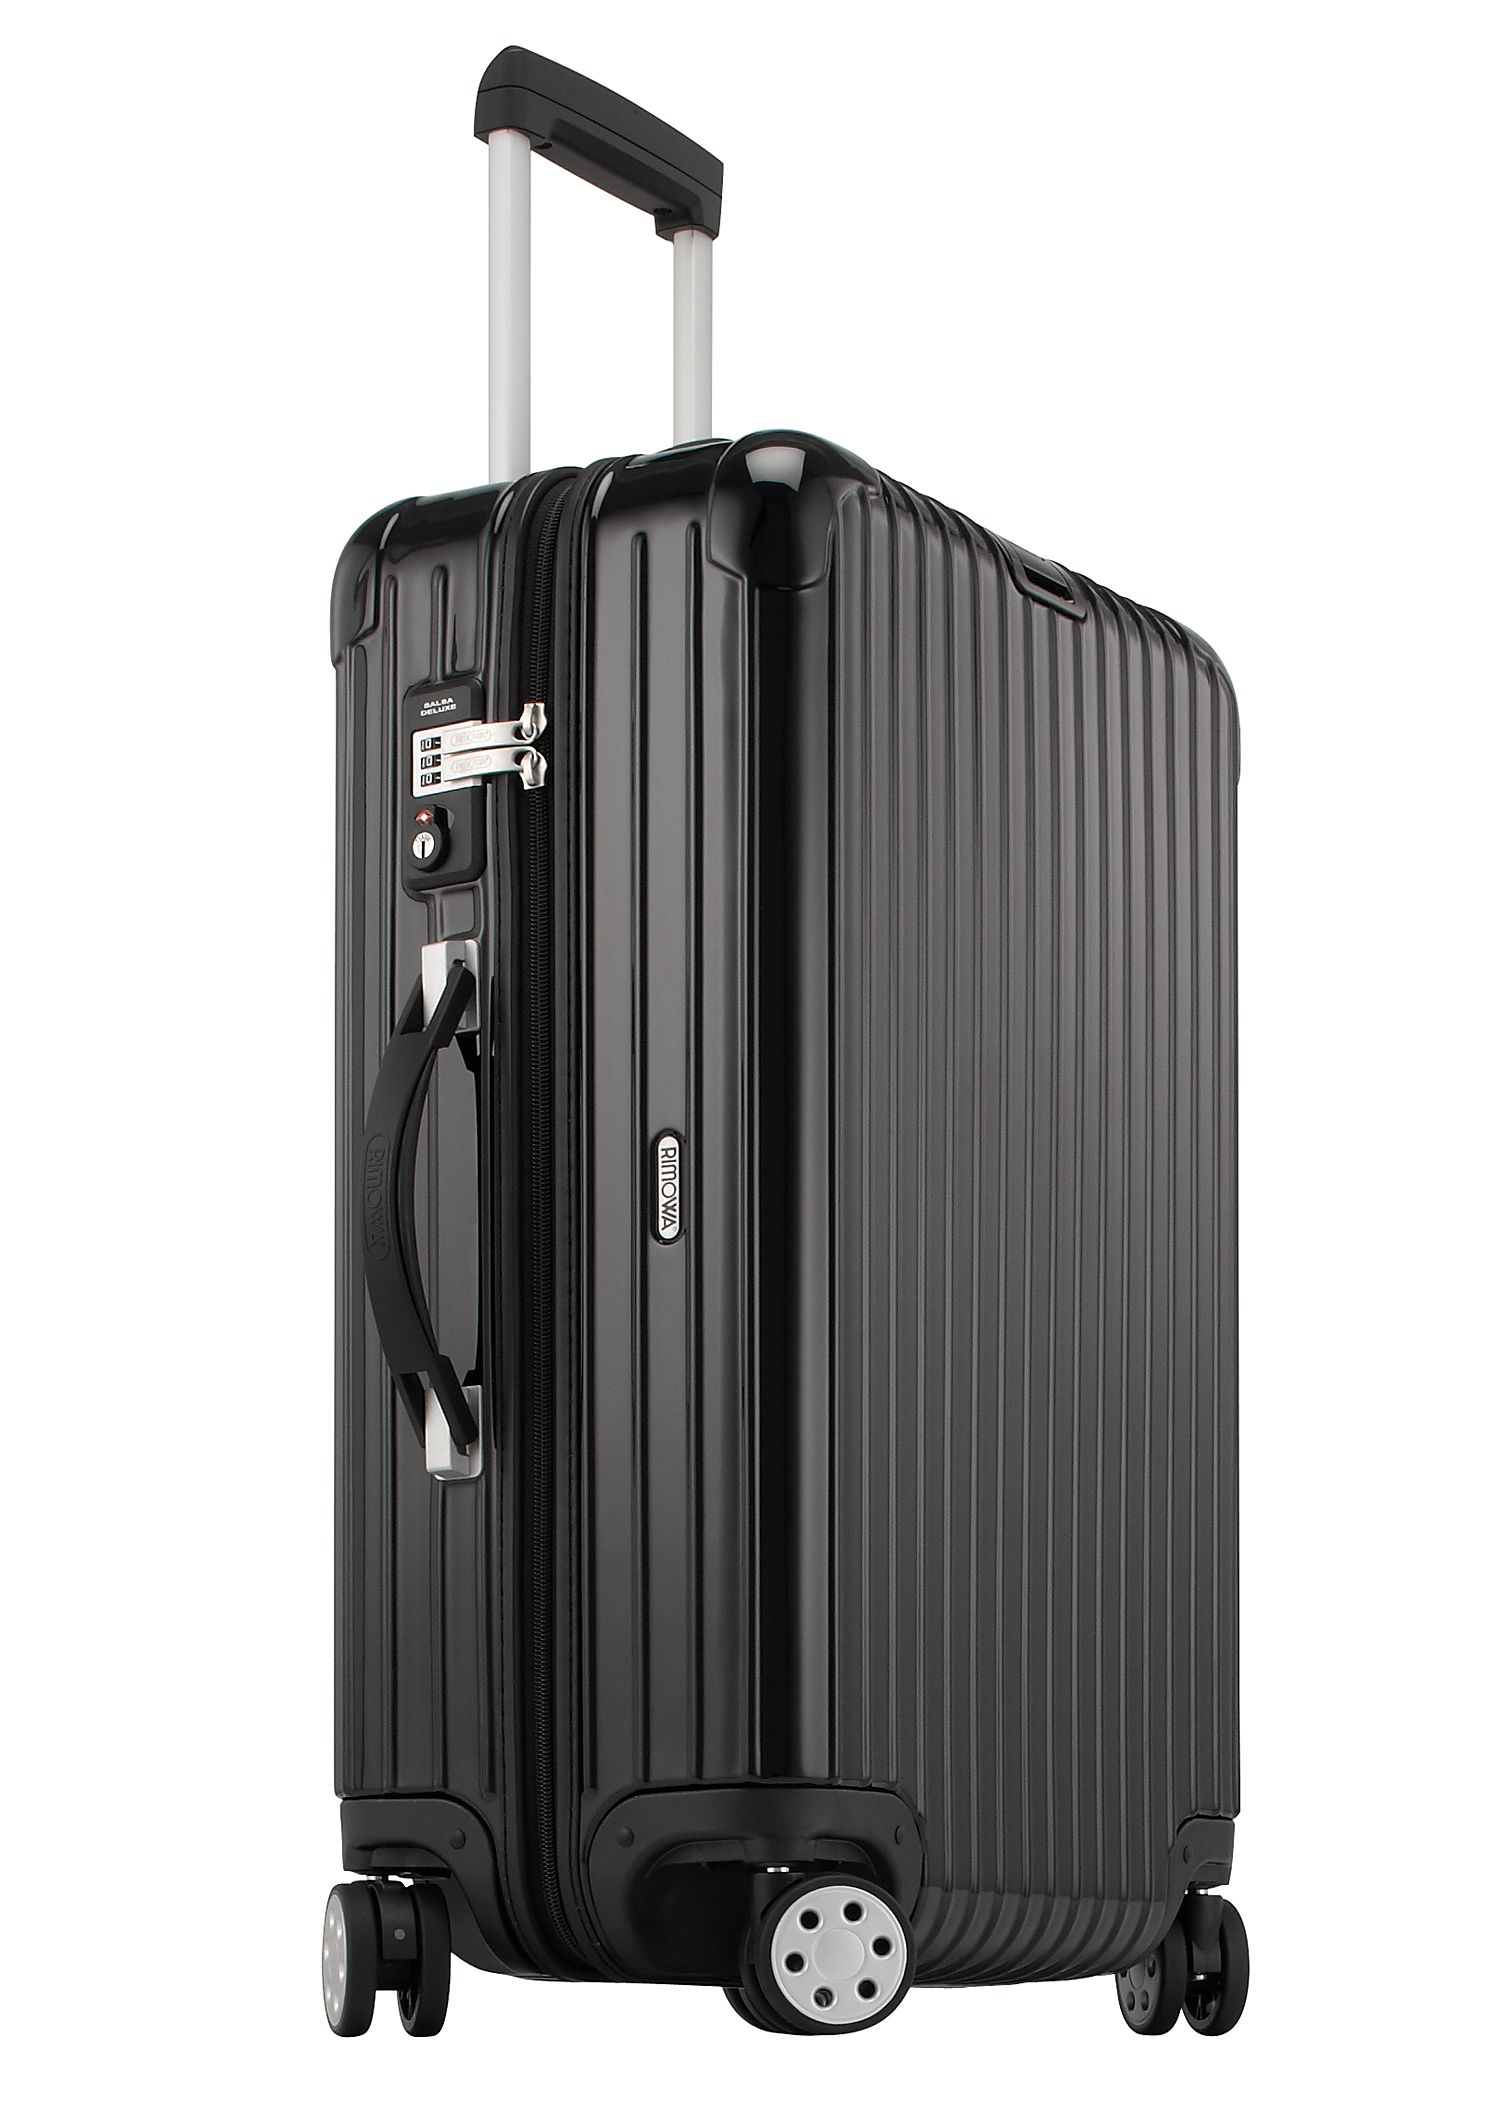 rimowa salsa deluxe multiwheel trolley 63 schwarz kofferexpress 24. Black Bedroom Furniture Sets. Home Design Ideas